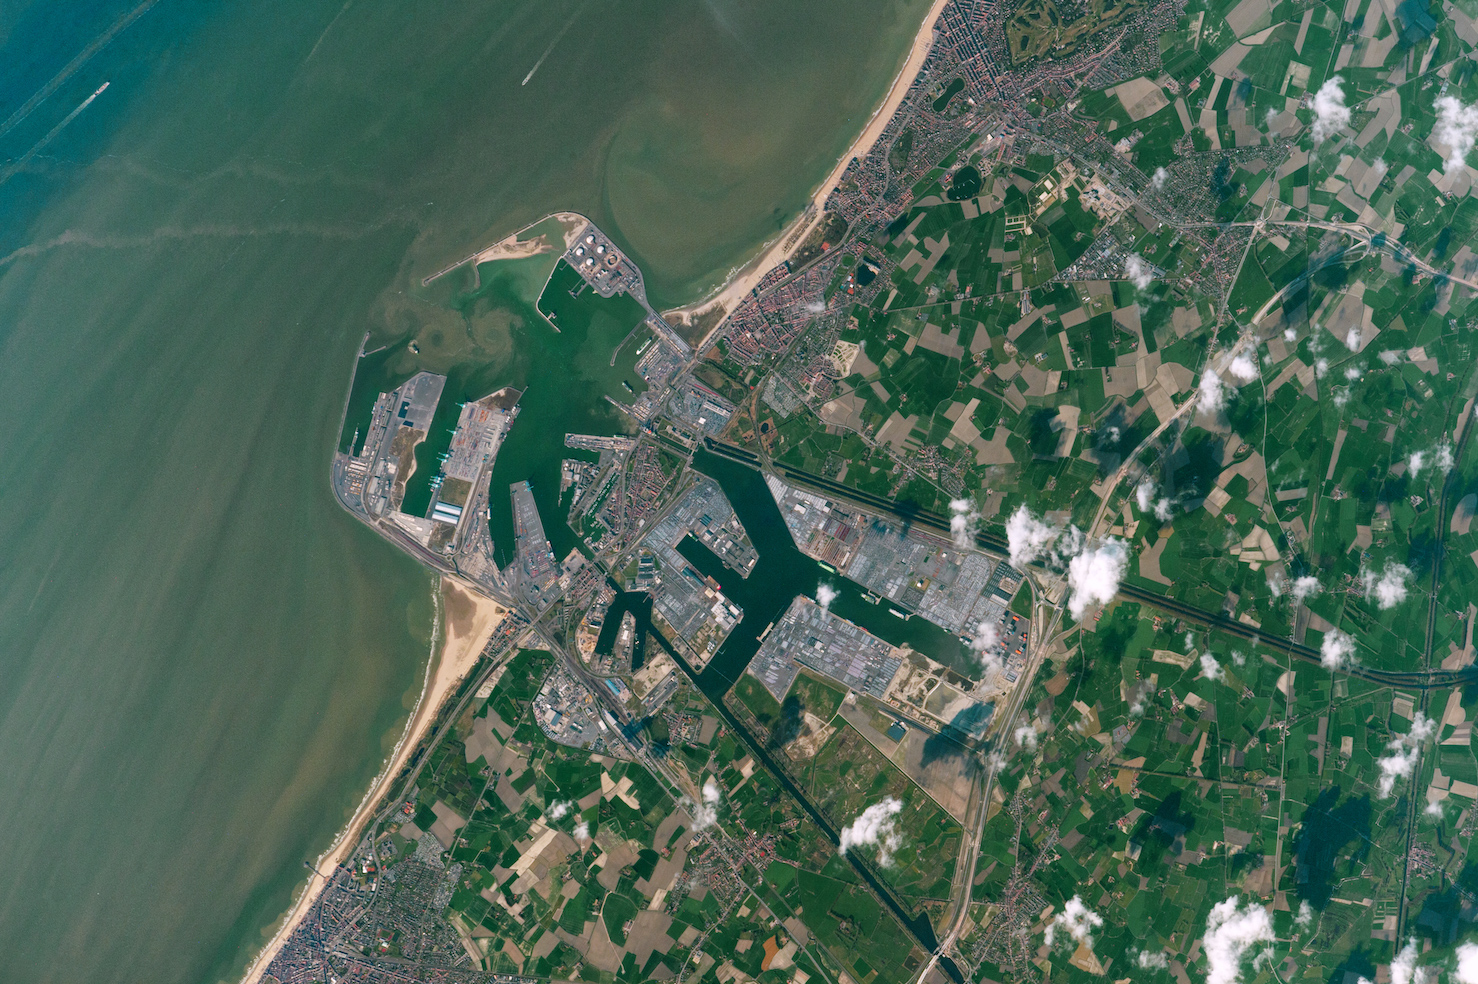 Today's Image of the Day comes thanks to the NASA Earth Observatory and features a look at the city of Zeebrugge, Belgium.